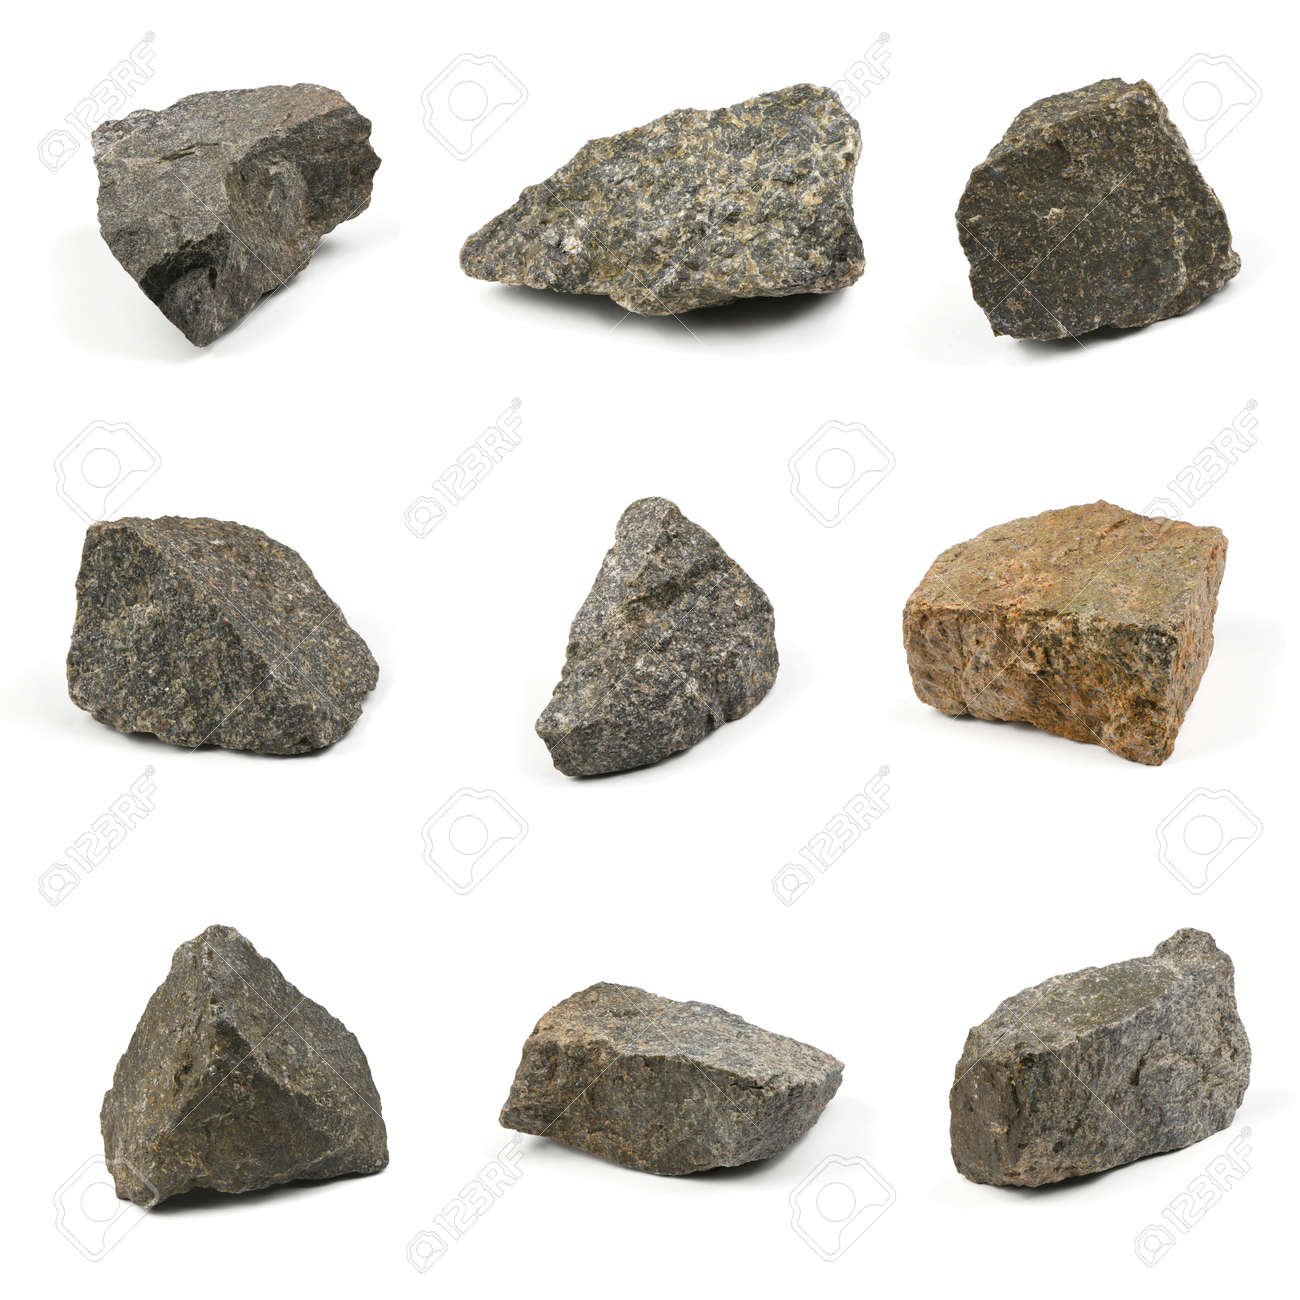 Nine Grungy granite stone, marble rock isolated on white background. High resolution photo. Full depth of field. - 133541547